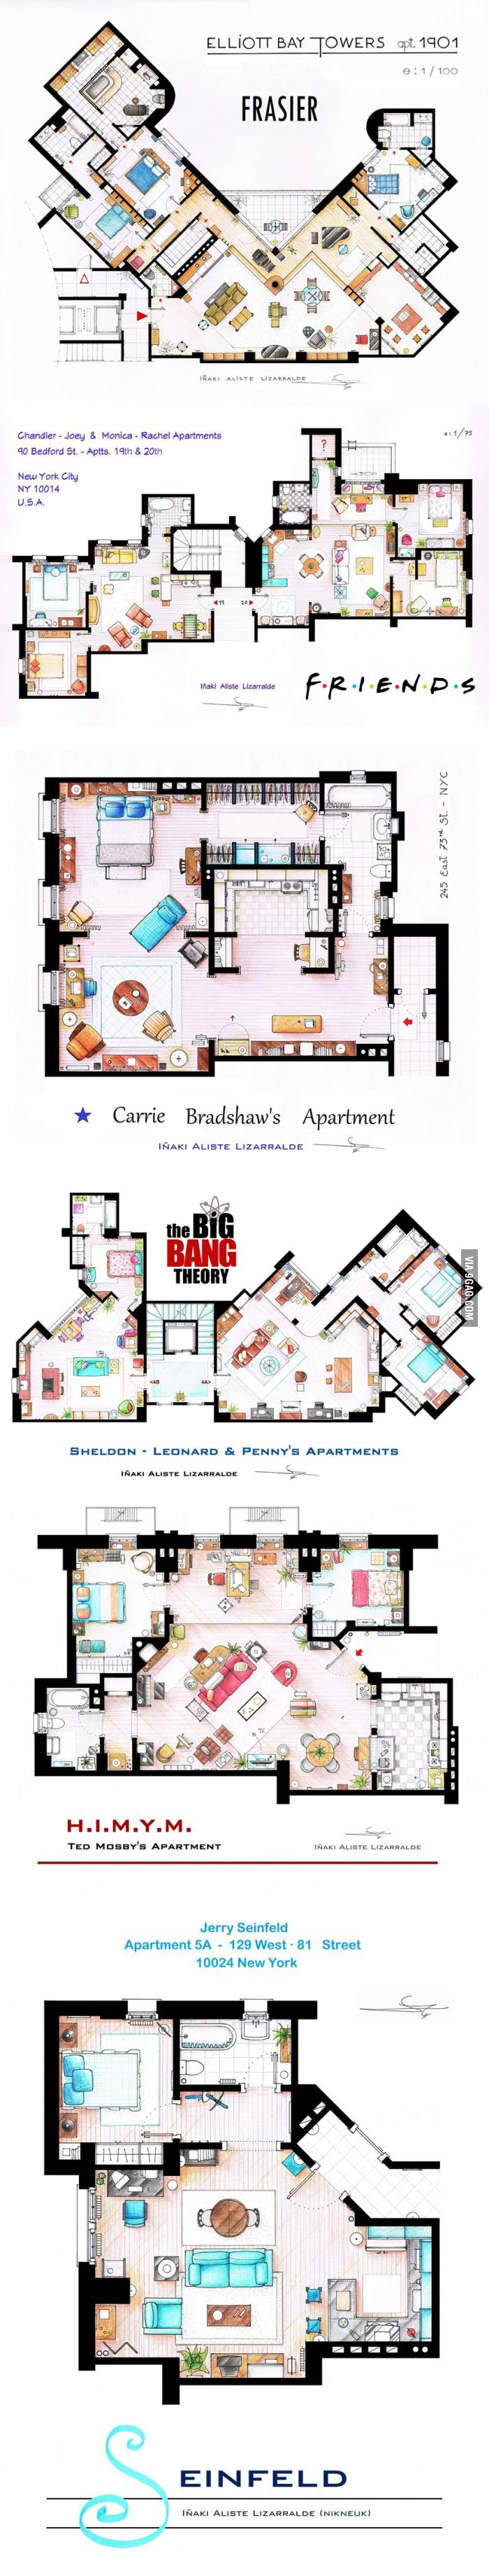 Floor plans from some TV series...omg imagine doing these on the sims?!!!! @Danielle Hernandez @Natalie Hernandez